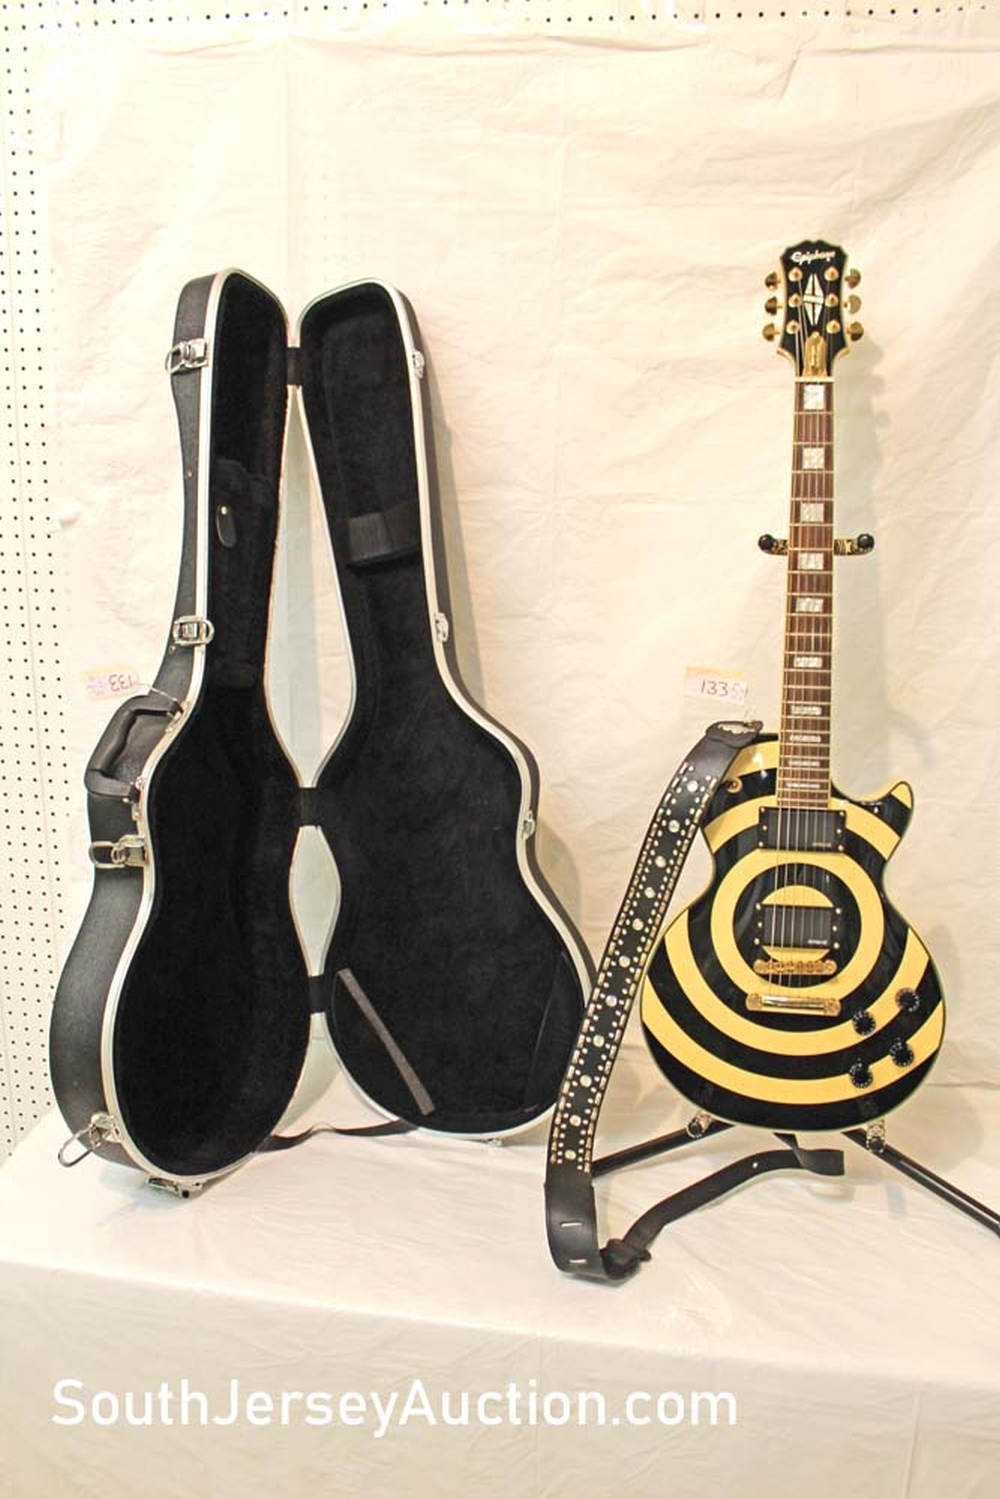 2004 Epiphone Zakk Wylde Les Paul Custom, guitar with grover tuners, EMGHZ fully active pickups, Zack Wyld Bulls Eye paint, gold hardware, s/n 10041515591, with strap, hard Play One case excellent shape